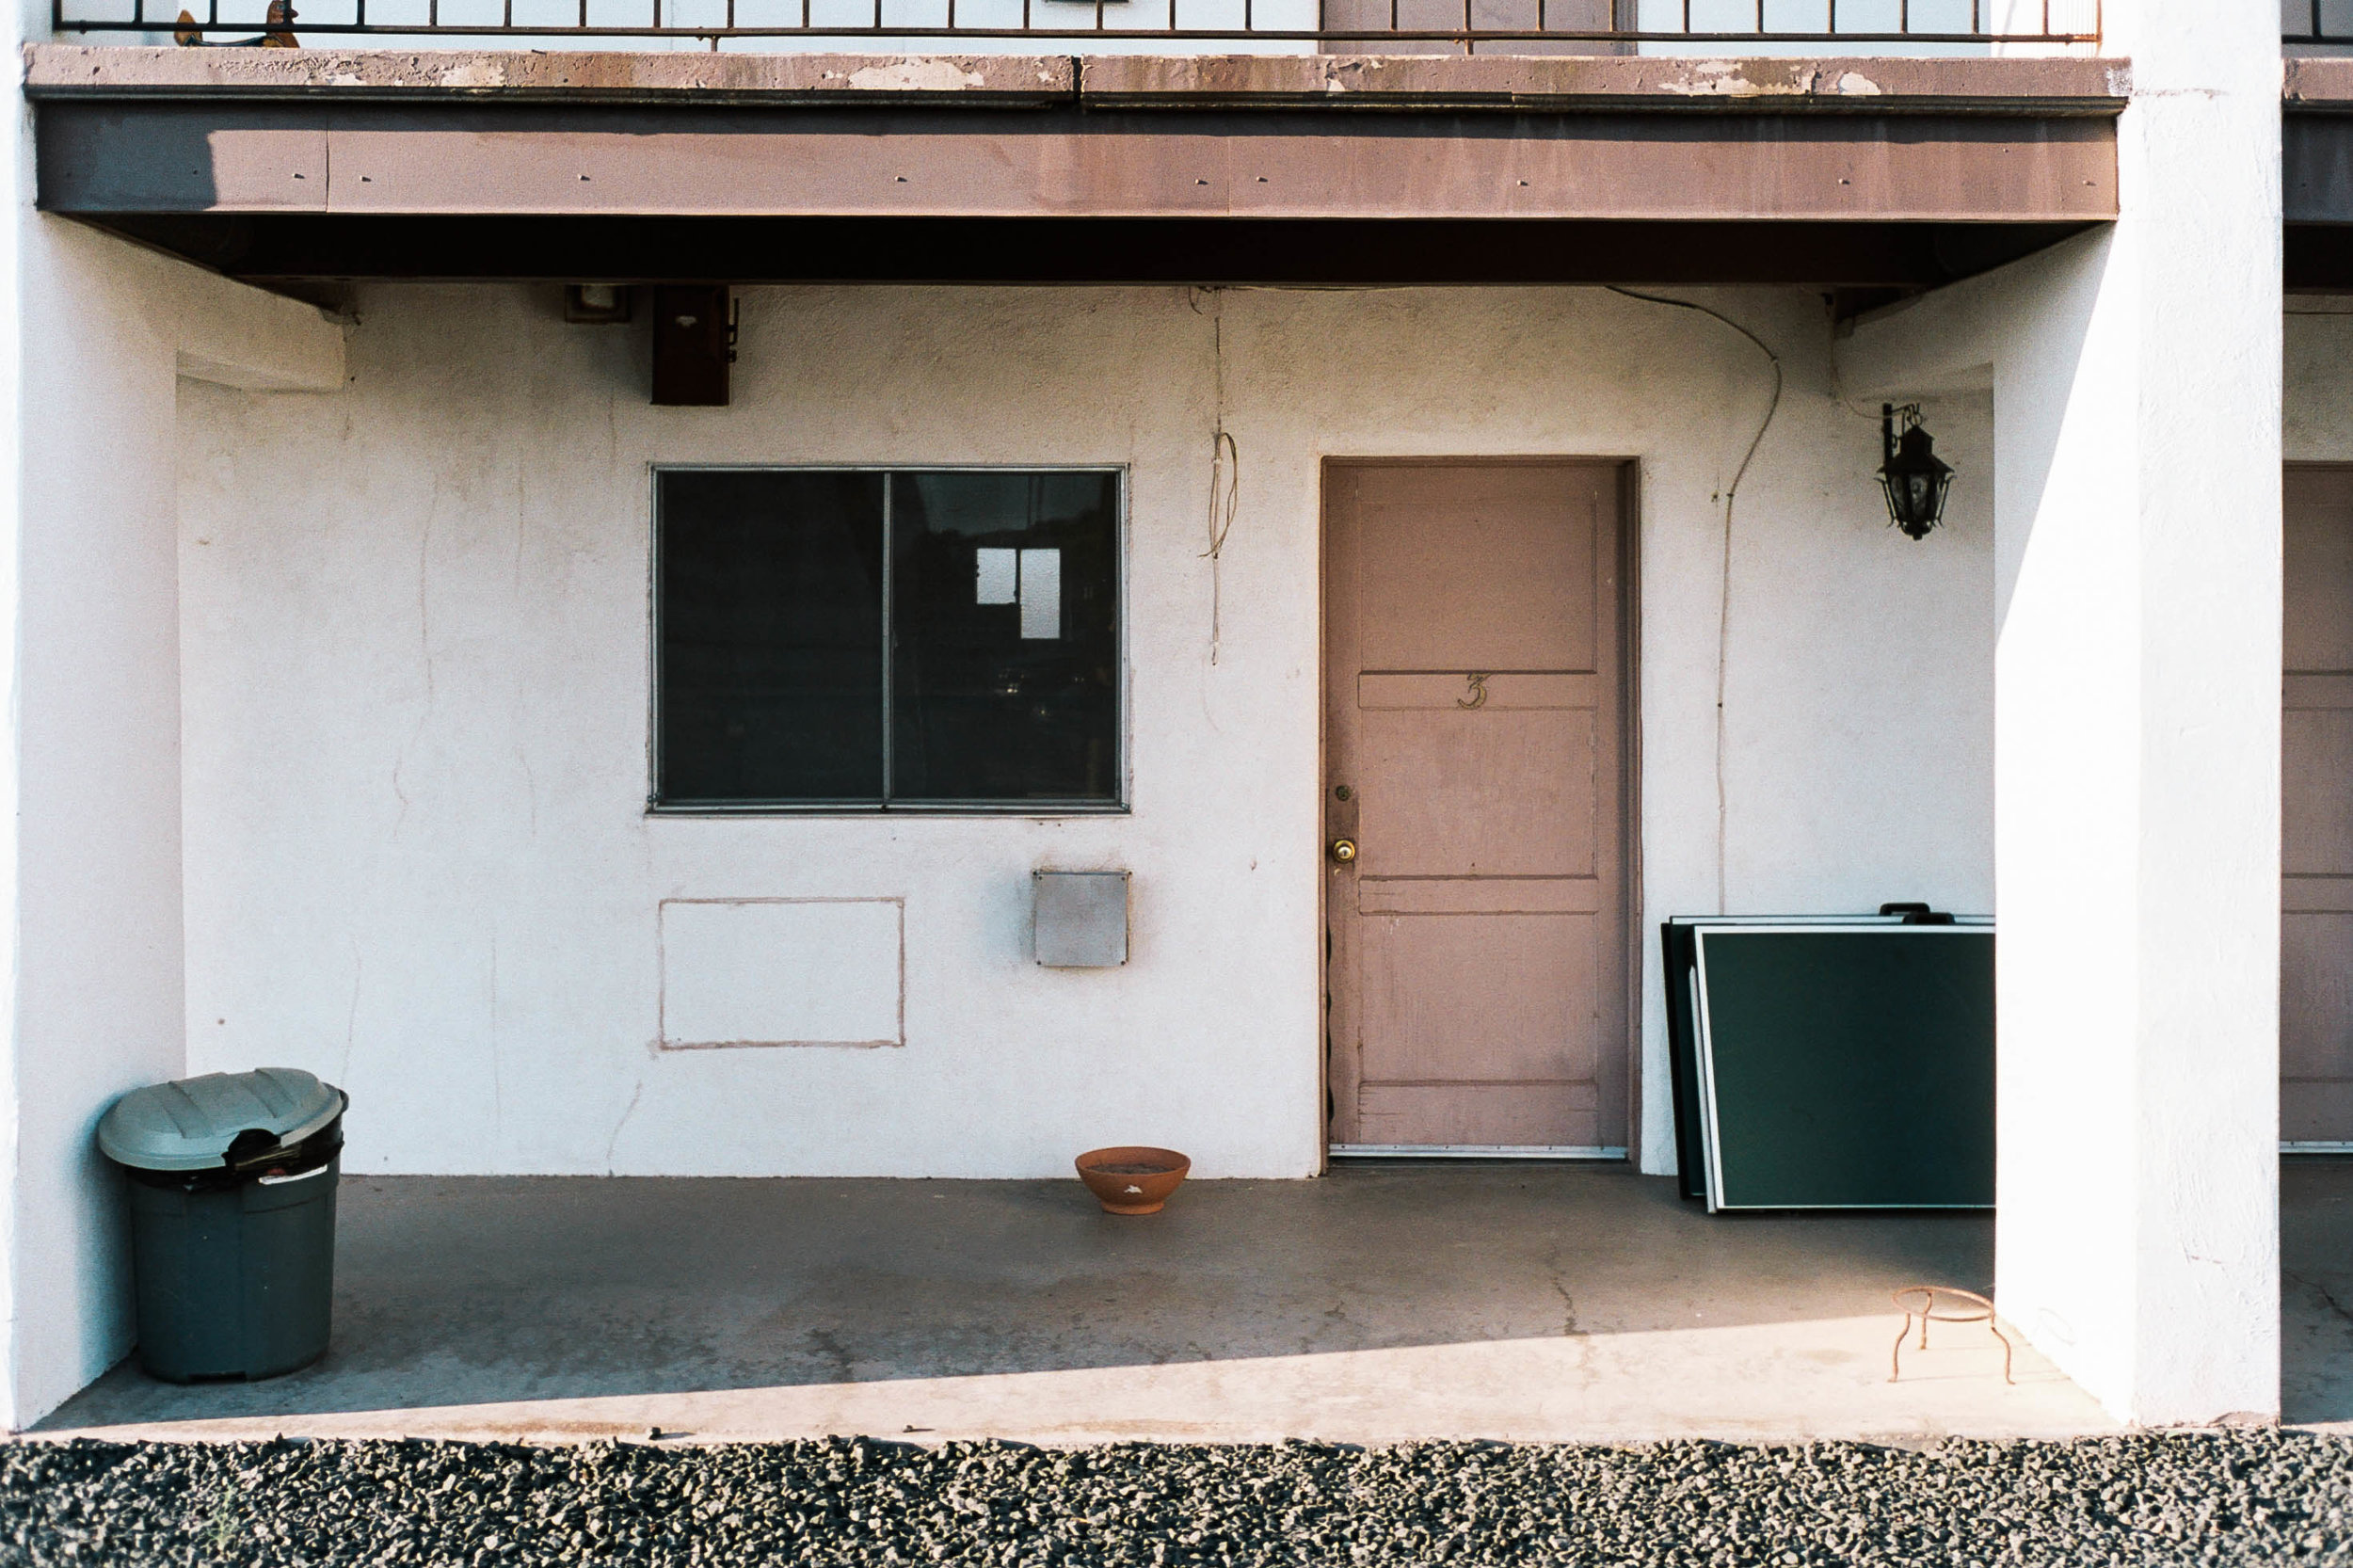 nate-matos-arizona-motel-3.jpg